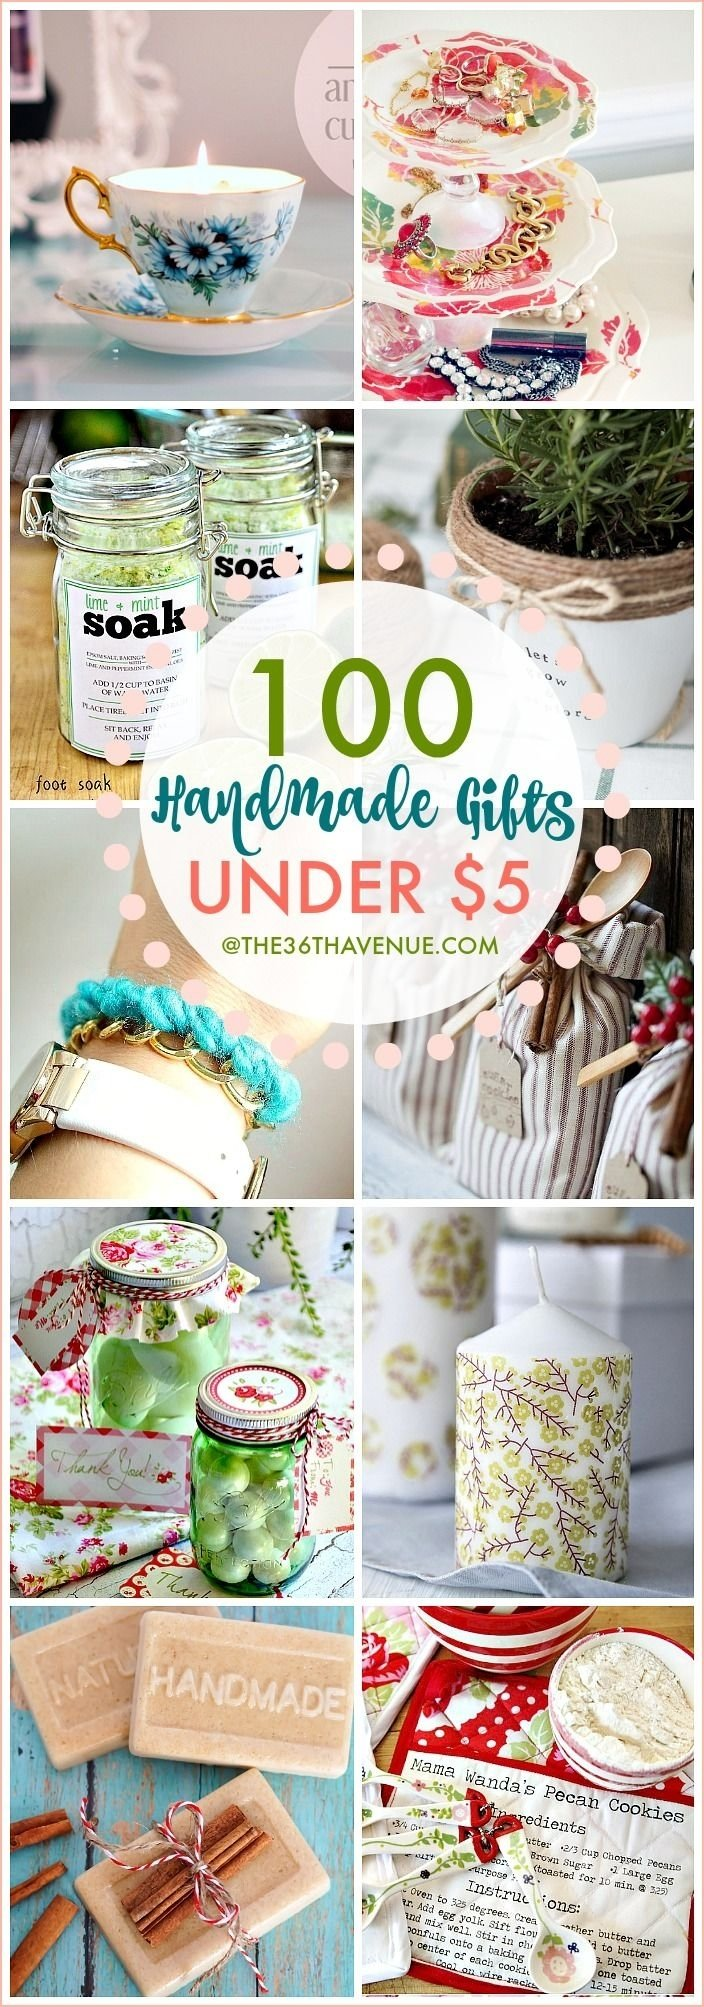 10 Great Great Homemade Christmas Gift Ideas 51 best diy gift ideas images on pinterest diy presents gift 5 2020